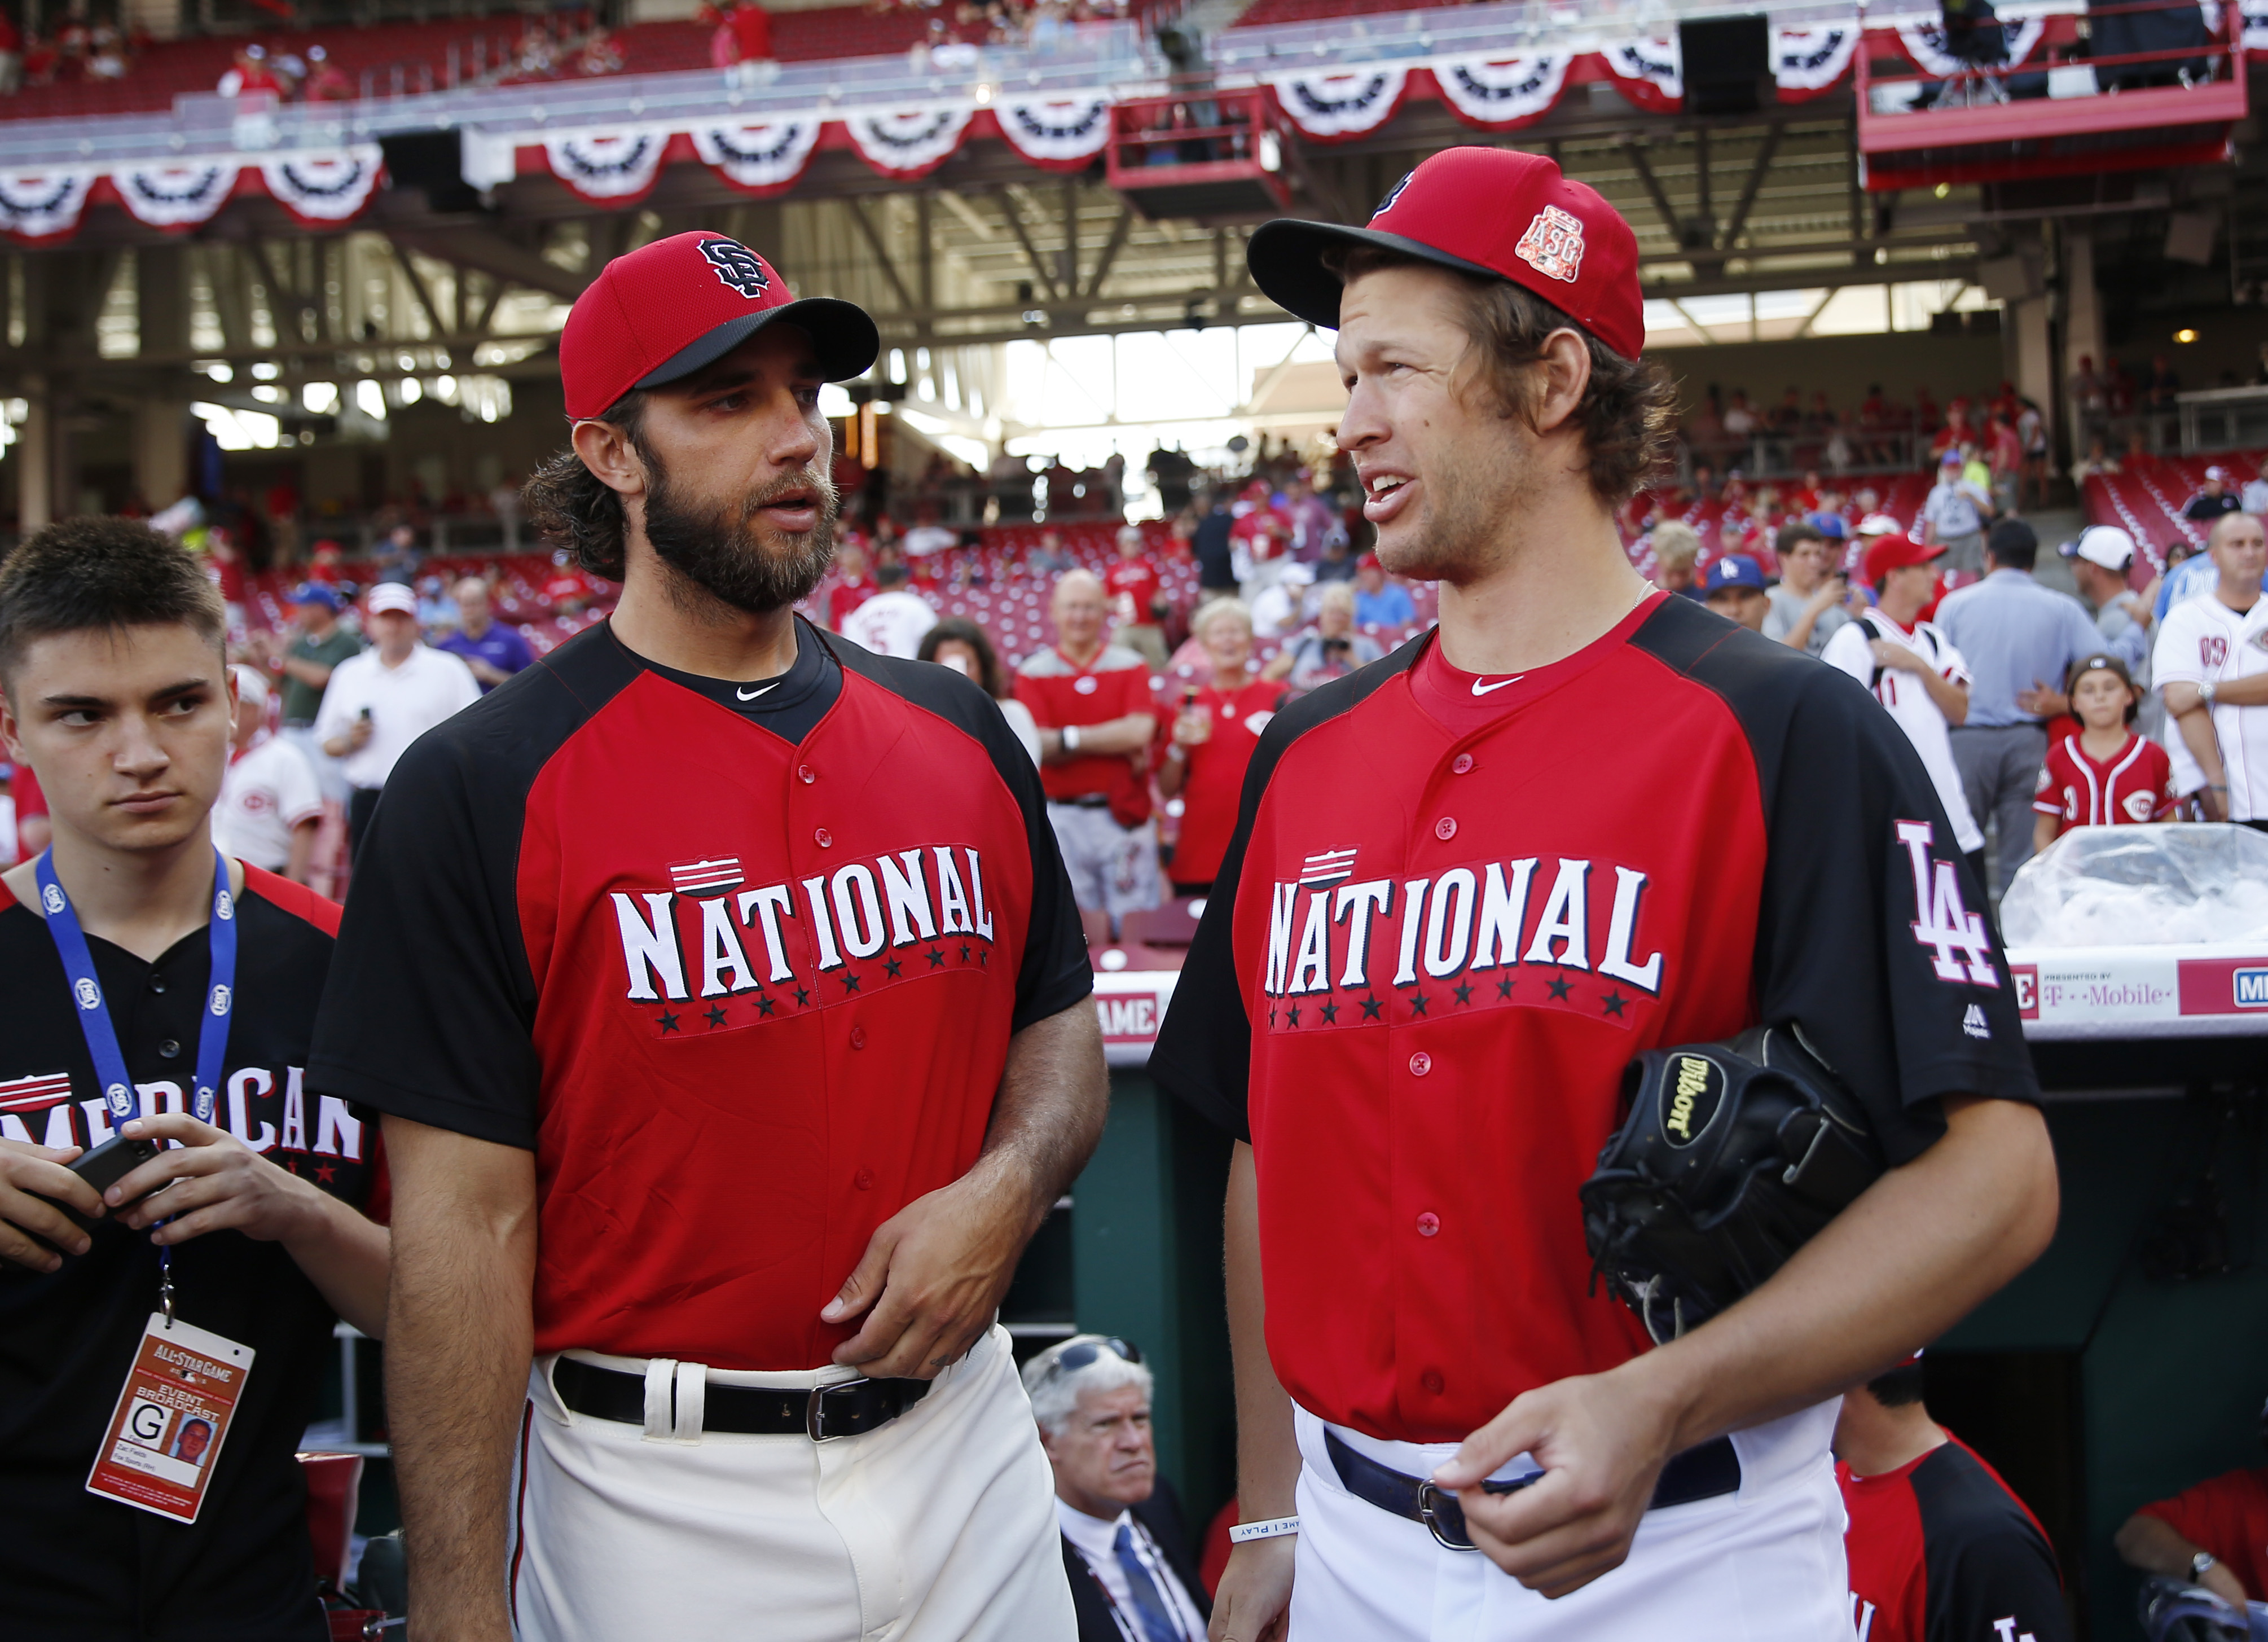 National League's Madison Bumgarner, of the San Francisco Giants, talks with Clayton Kershaw, of the Los Angeles Dodgers, before the MLB All-Star baseball game, Tuesday, July 14, 2015, in Cincinnati. (AP Photo/Jeff Roberson)